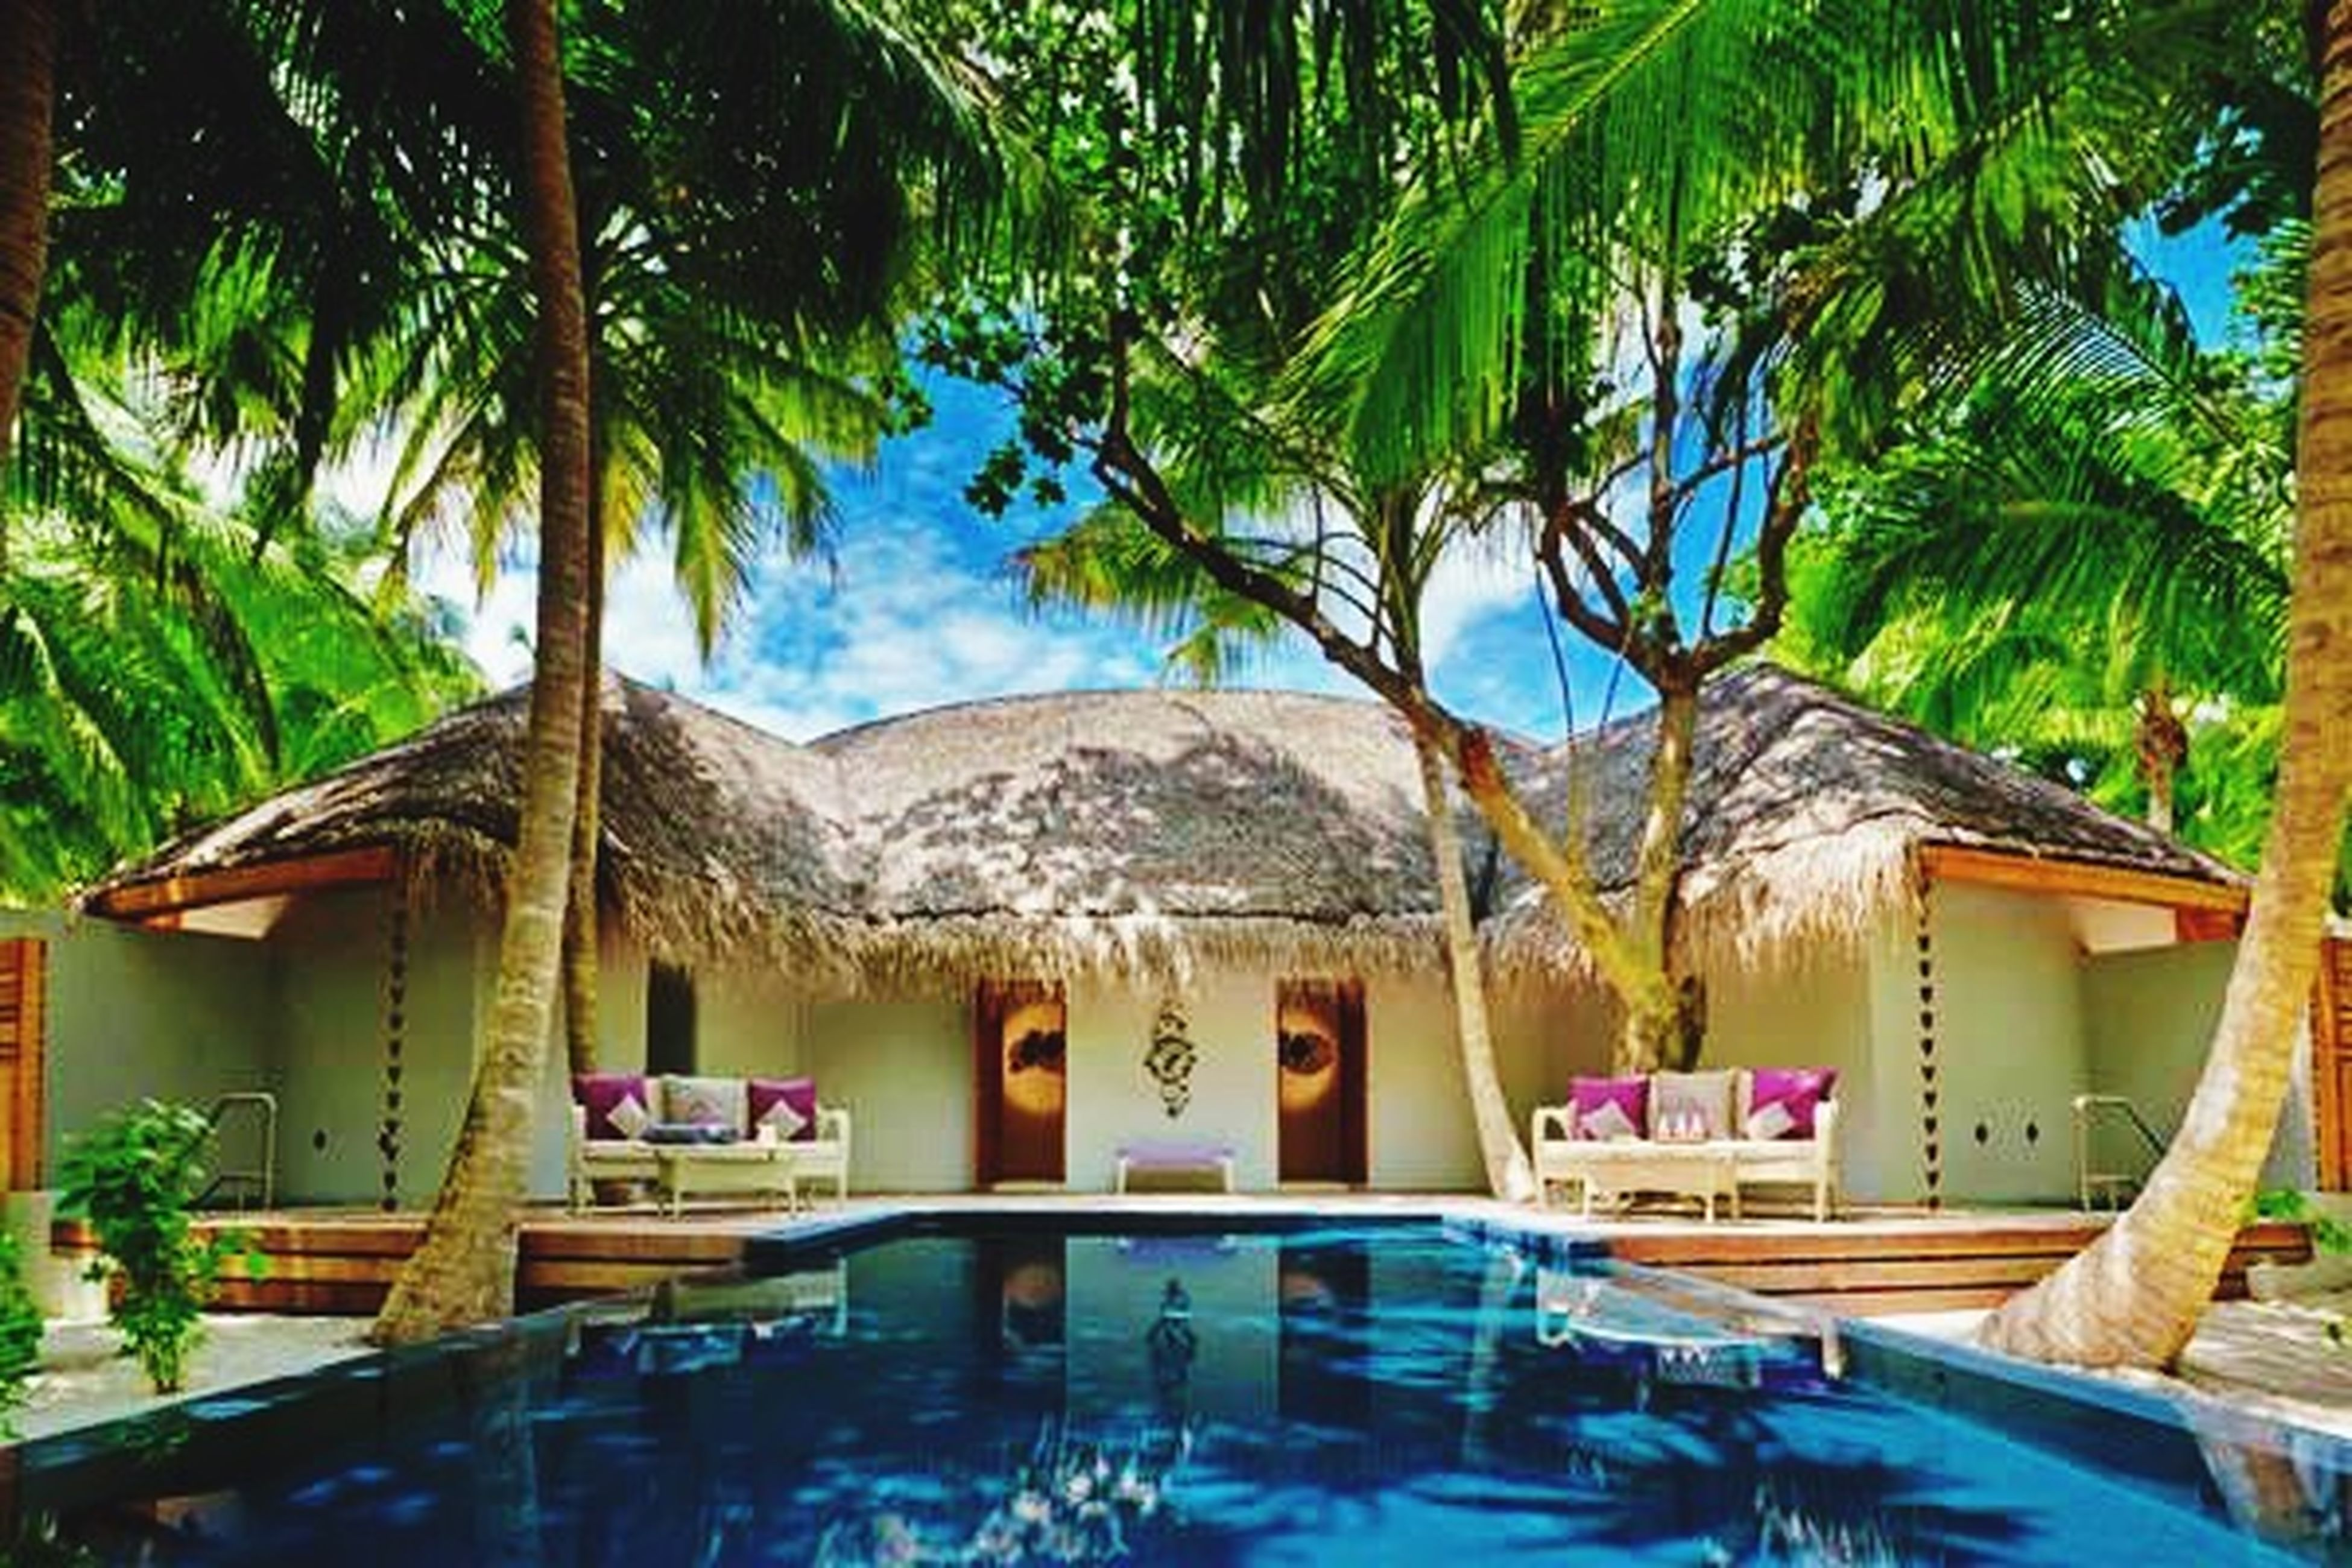 architecture, built structure, tree, building exterior, palm tree, house, sky, residential structure, water, residential building, roof, blue, tourist resort, day, swimming pool, nature, growth, outdoors, no people, sunlight